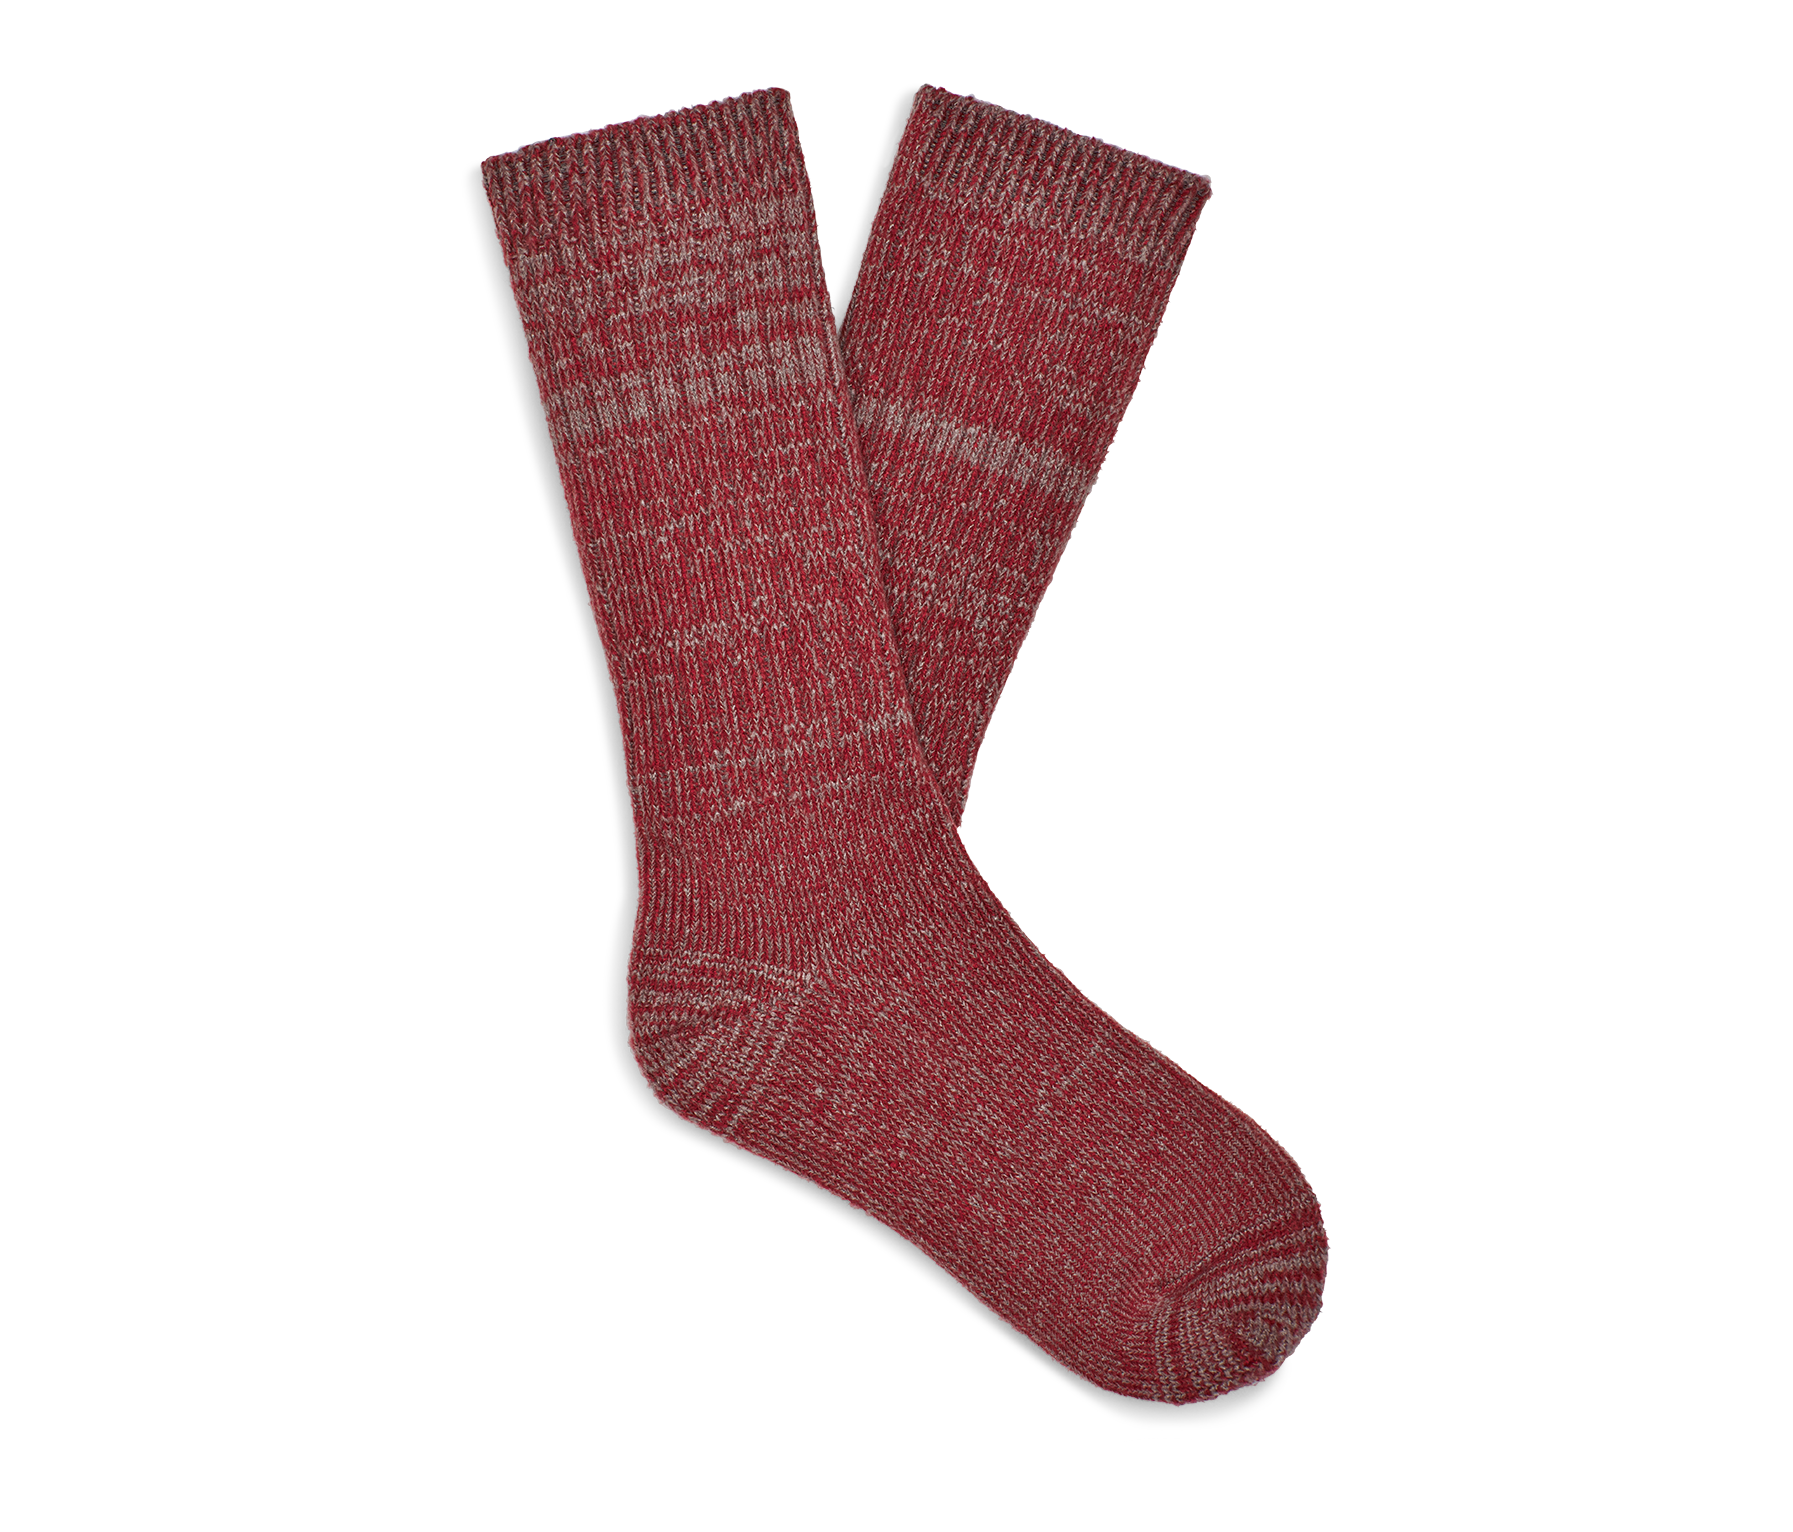 UGG Men's Trey Rib Knit Slouchy Crew Polyester Socks in Red Made from a soft rib knit, this cozy crew sock is designed for a slouchier fit, offering premium relaxation that's perfect around the house. 99% Polyester/1% Elastane. UGG Men's Trey Rib Knit Slouchy Crew Polyester Socks in Red